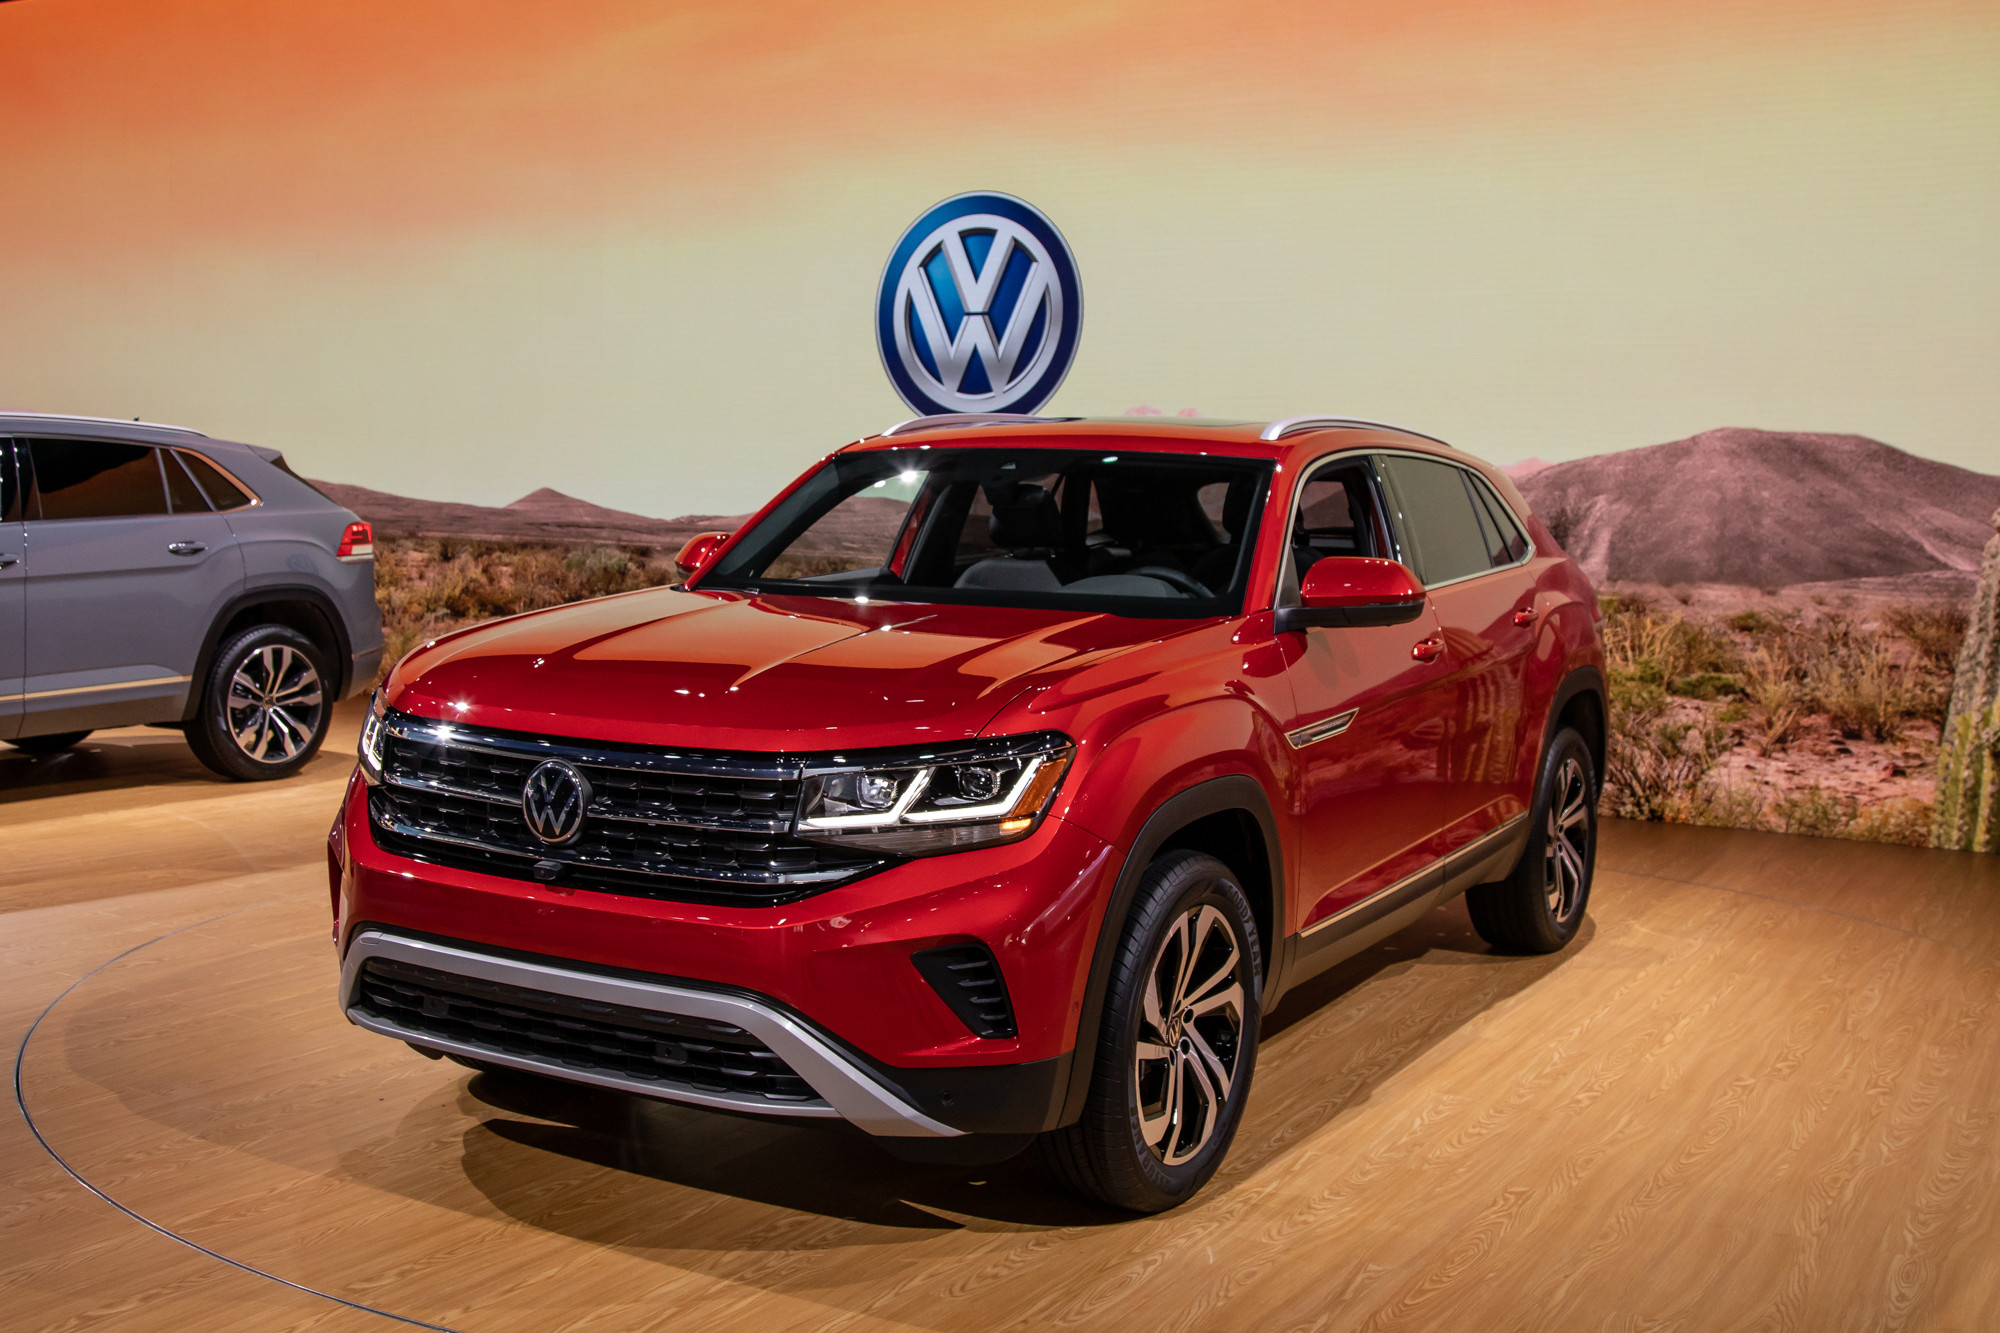 volkswagen-atlas-cross-sport-2020-cl-01-exterior-red.jpg